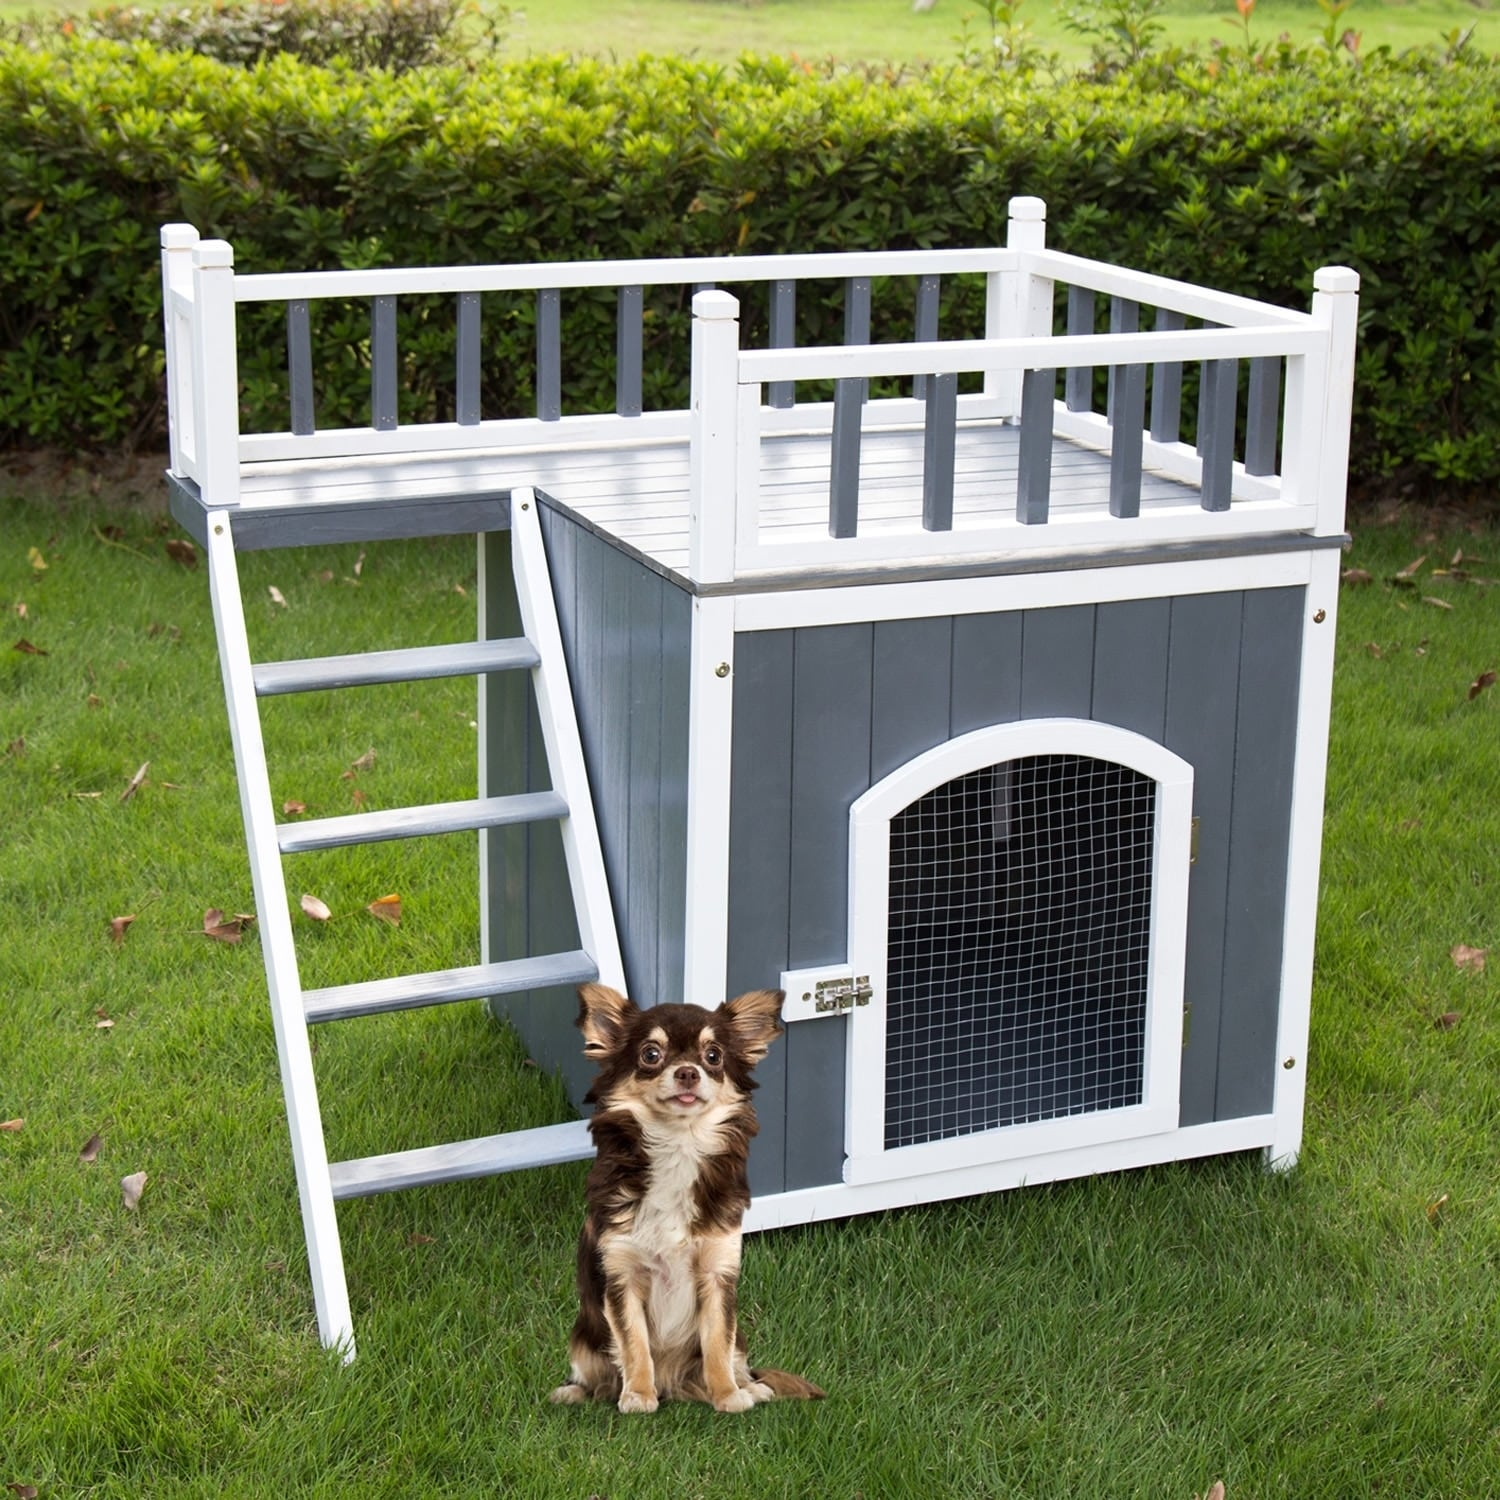 Shop Kinbor Wooden Puppy Dog House Indoor Outdoor Pet Balcony Bed